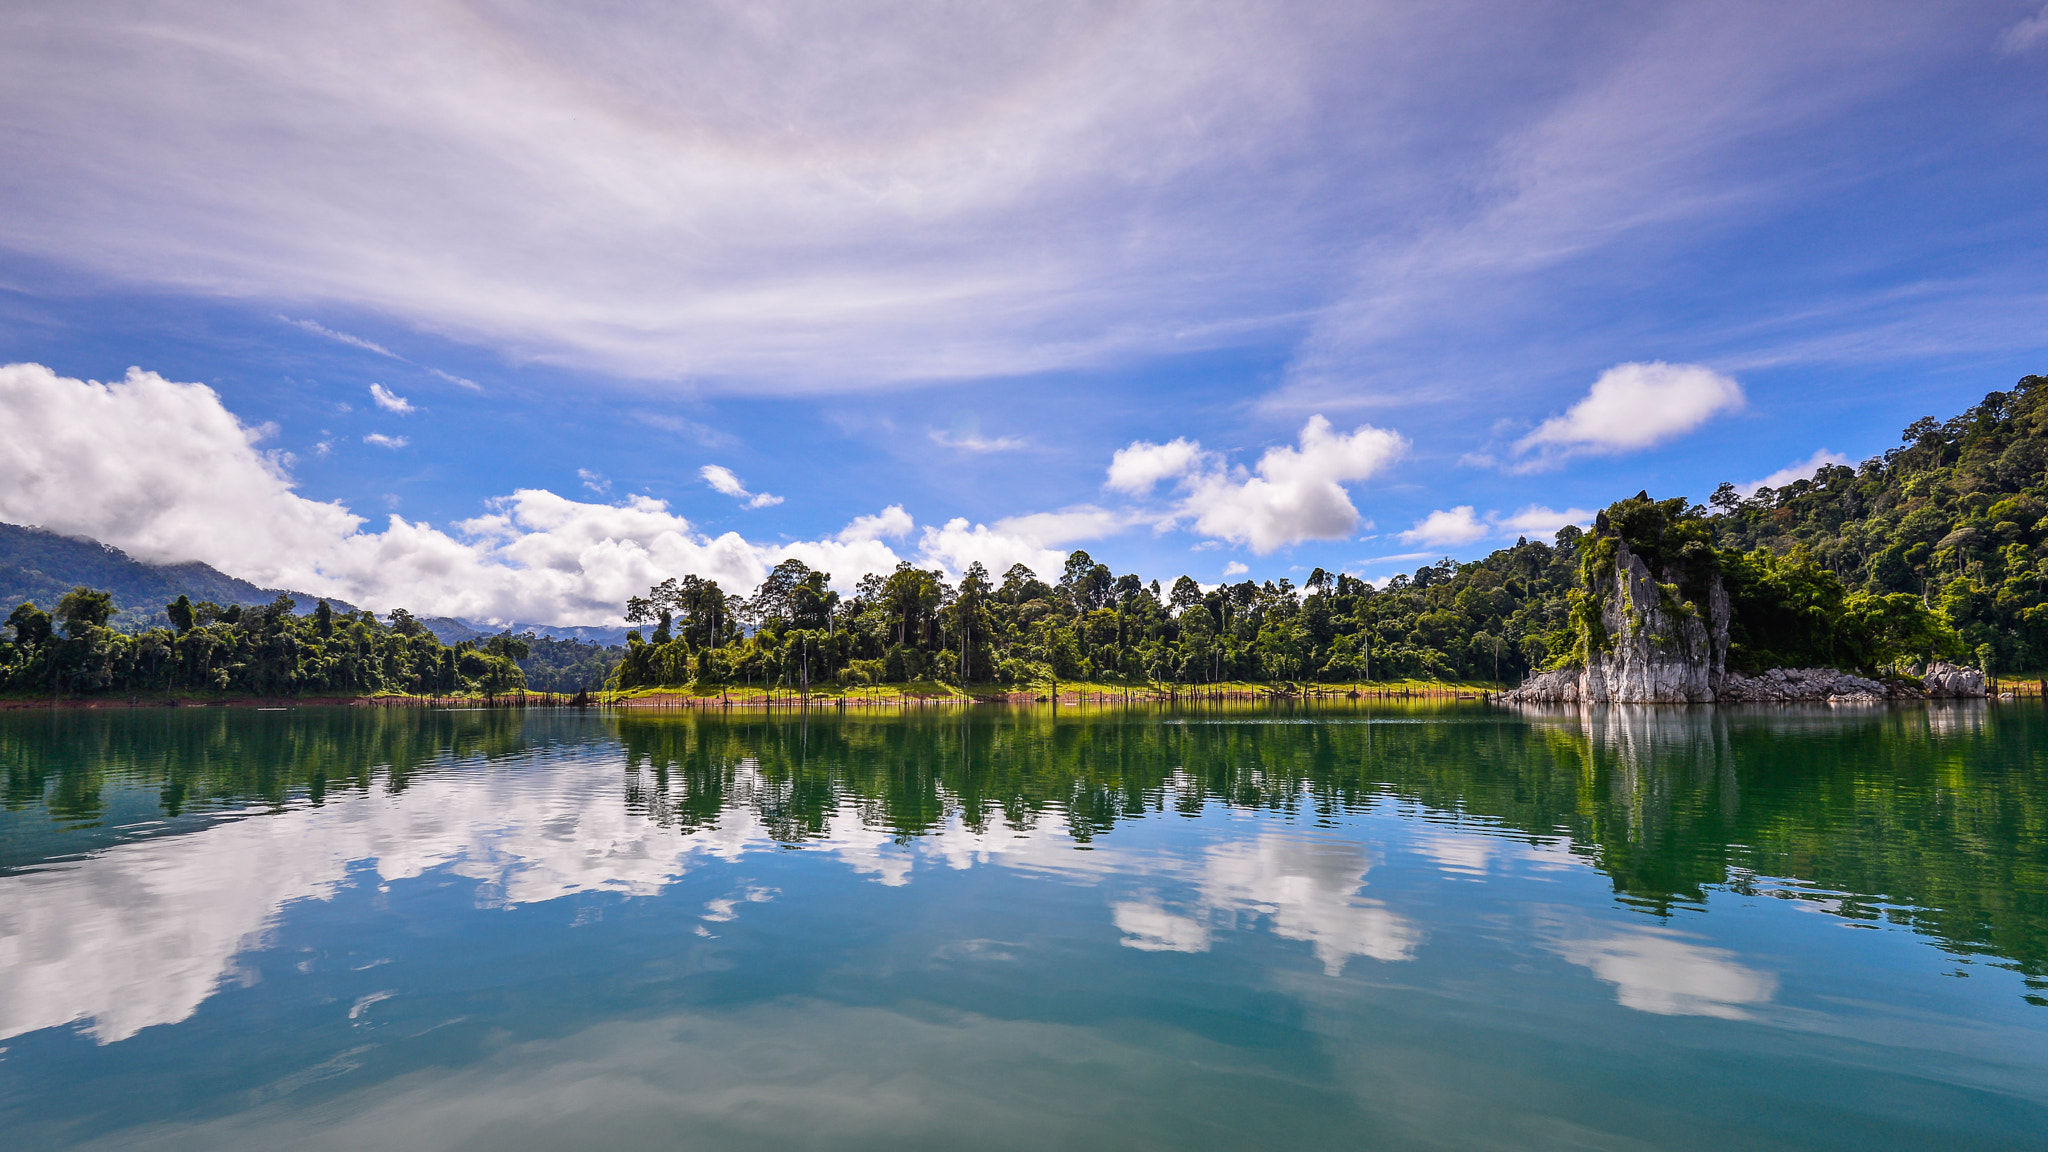 Photograph fine day at kenyir lake by Mk Azmi on 500px